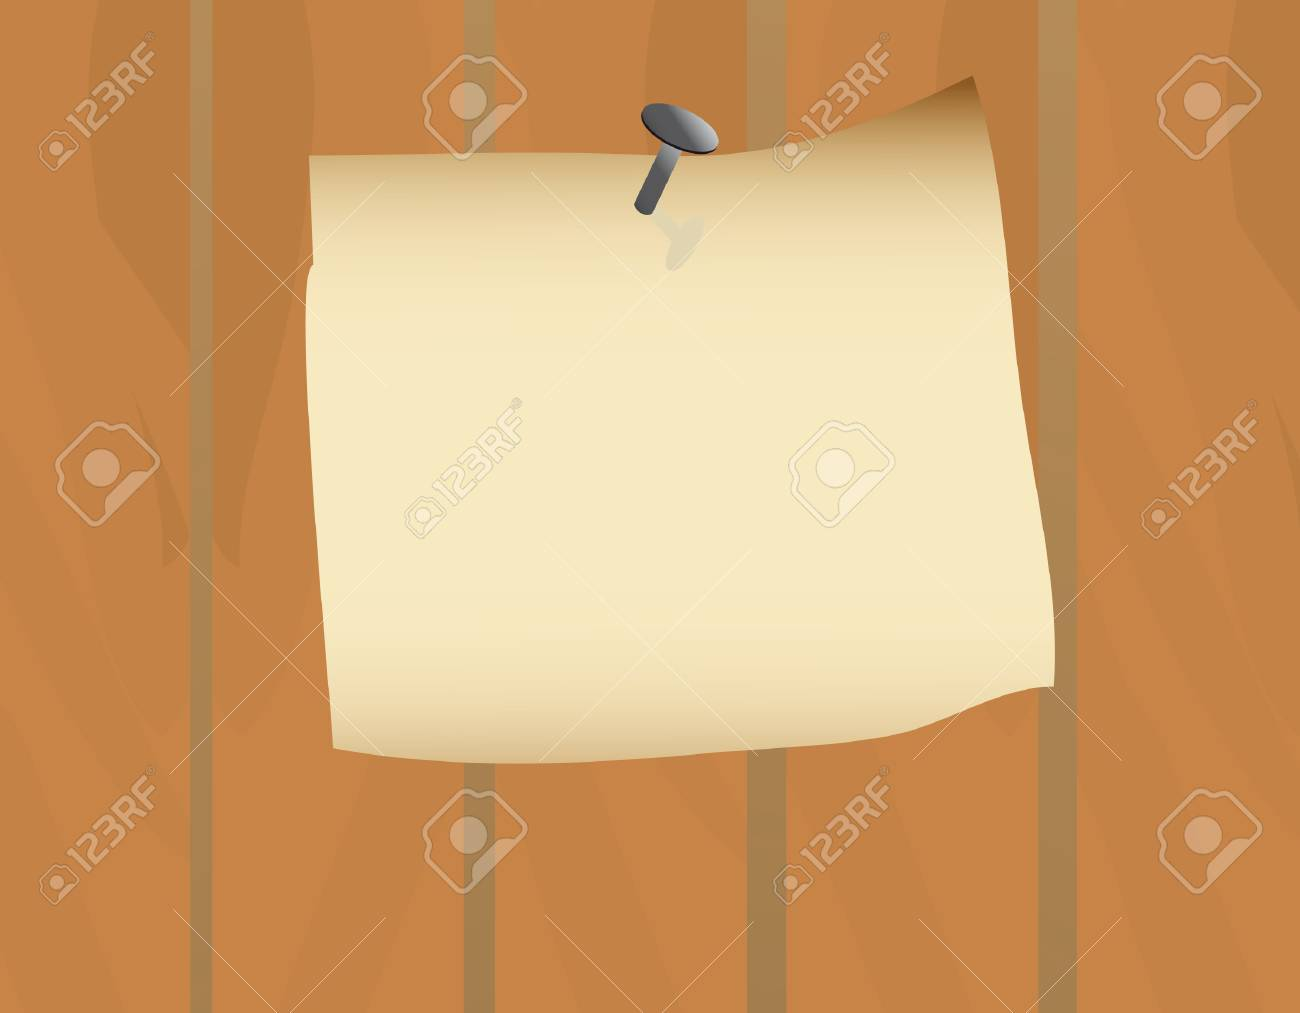 Announcement on the old fence. illustration Stock Vector - 6634148